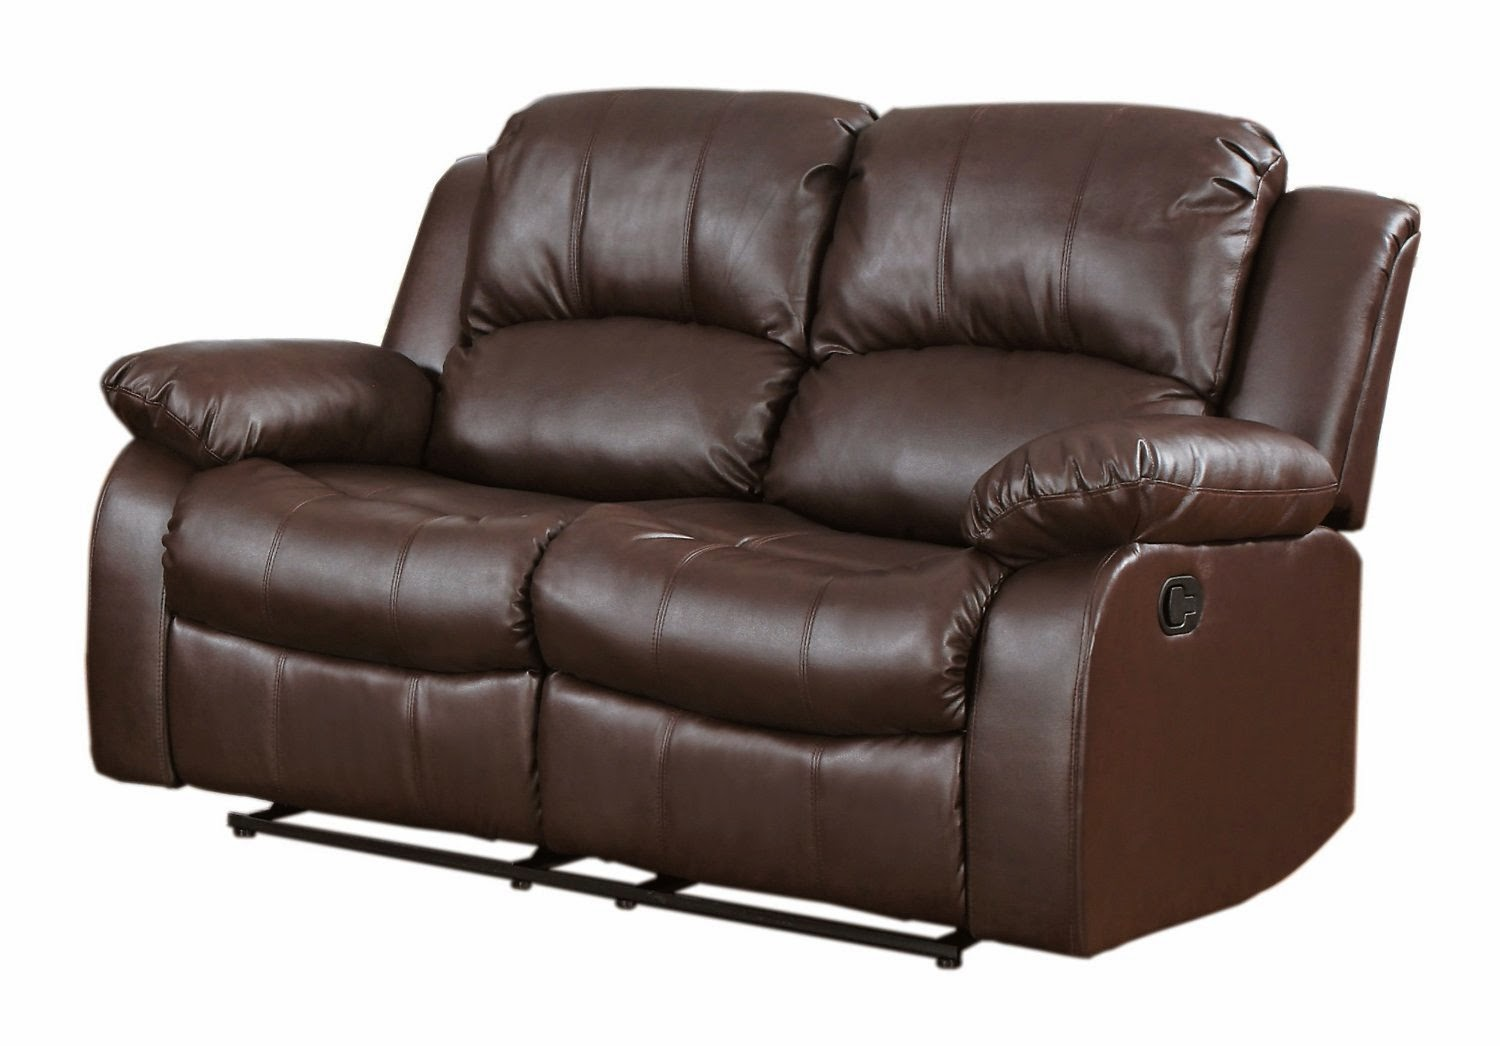 2 Seat Electric Recliner Sofa Jordan S Furniture Sofas Where Is The Best Place To Buy Seater